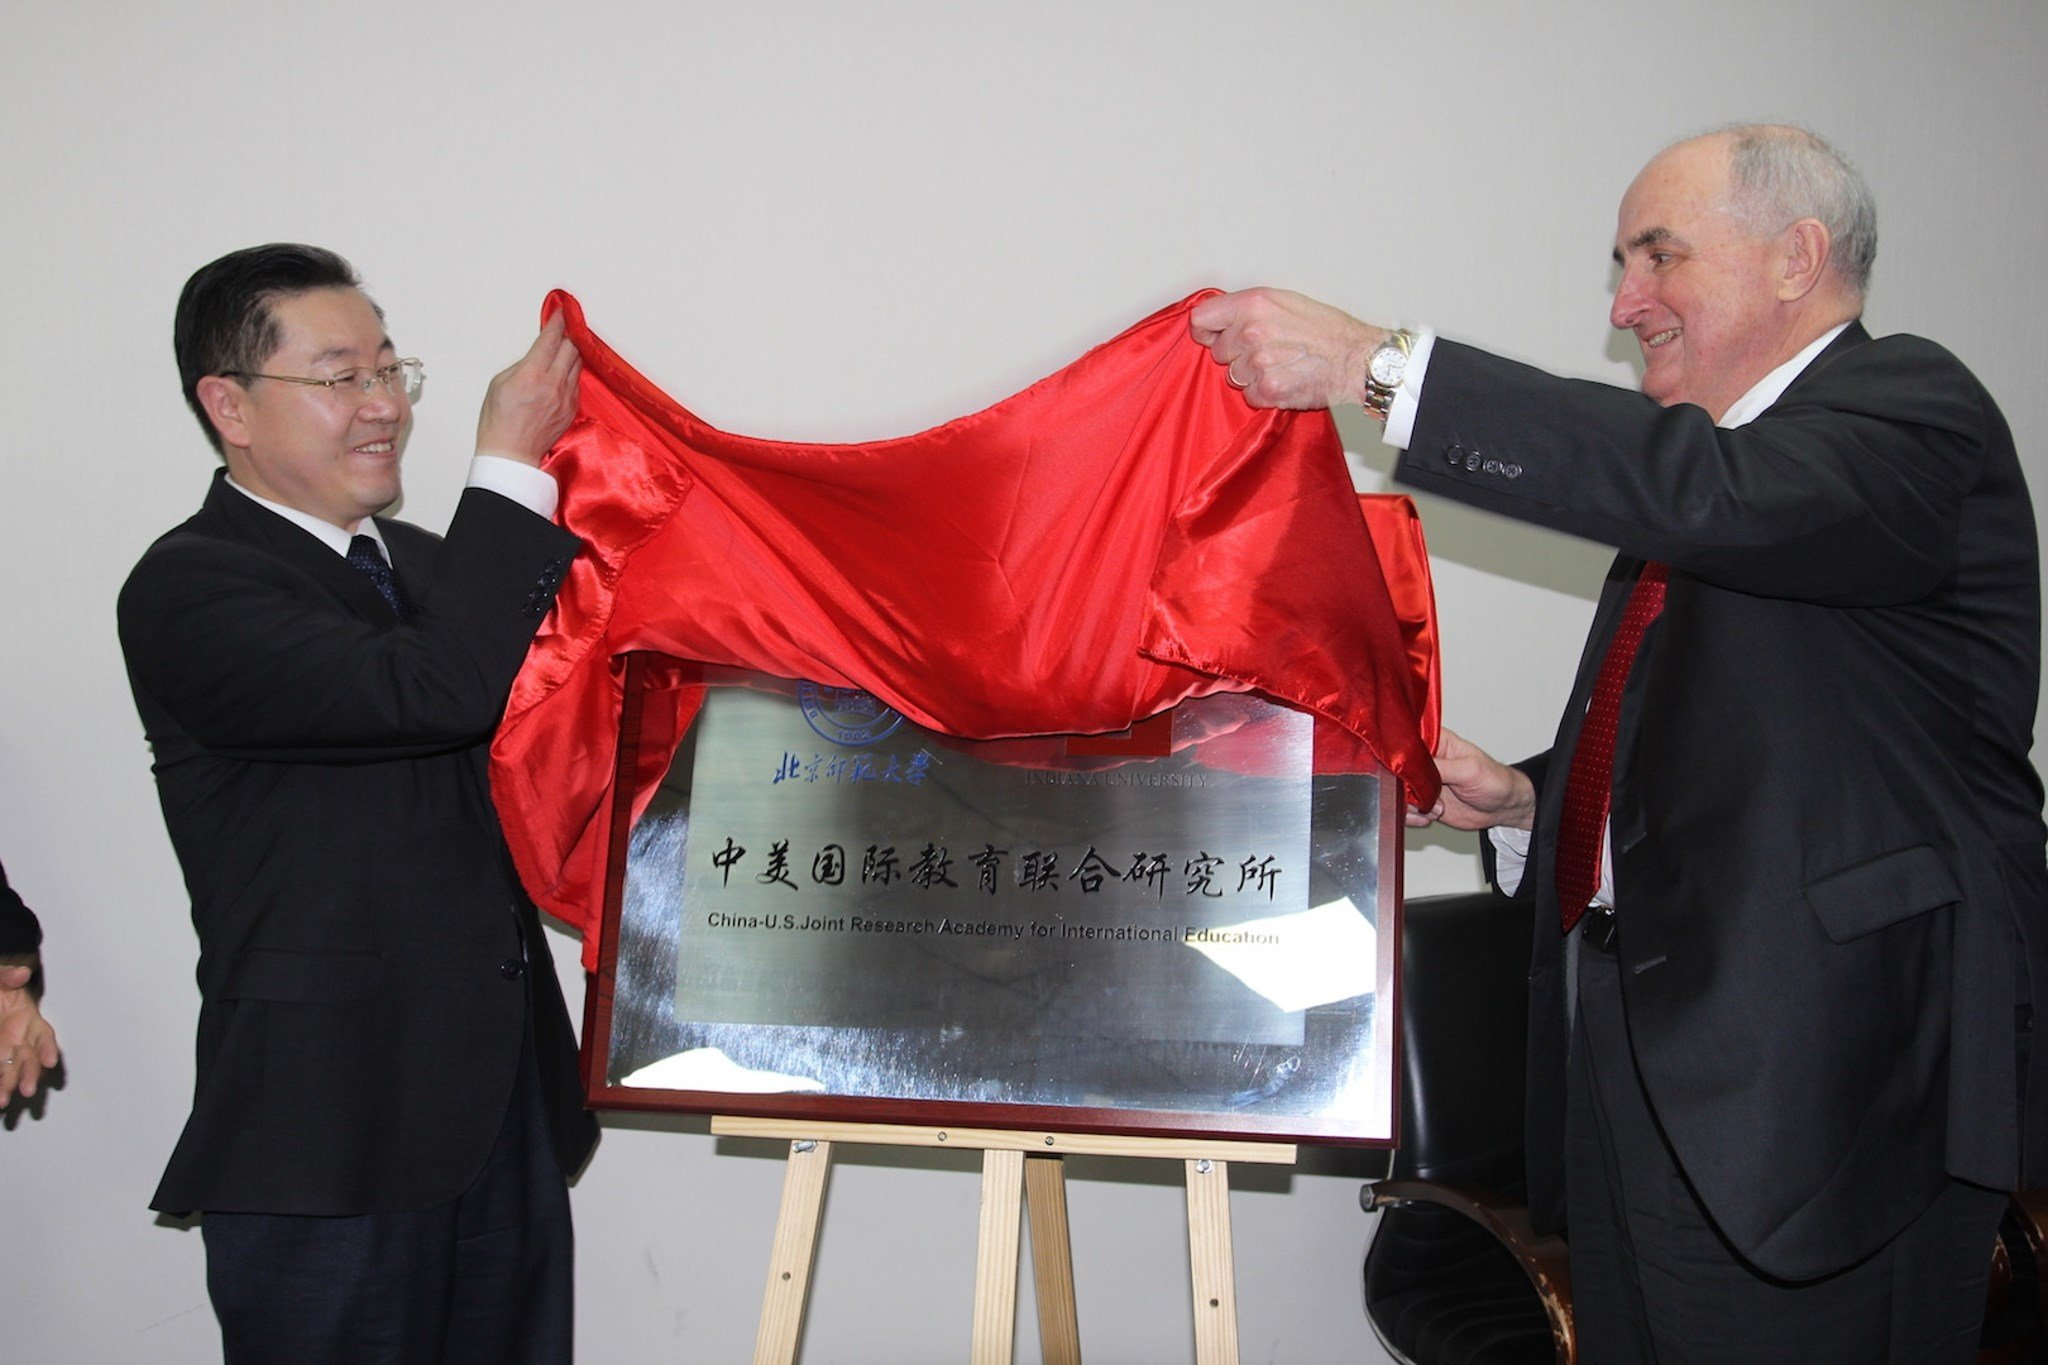 Michael McRobbie (pictured right) and Beijing Normal University Vice President Zhou Zuoyu inked a partnership called the China-U.S. Joint Research Academy for International Education.